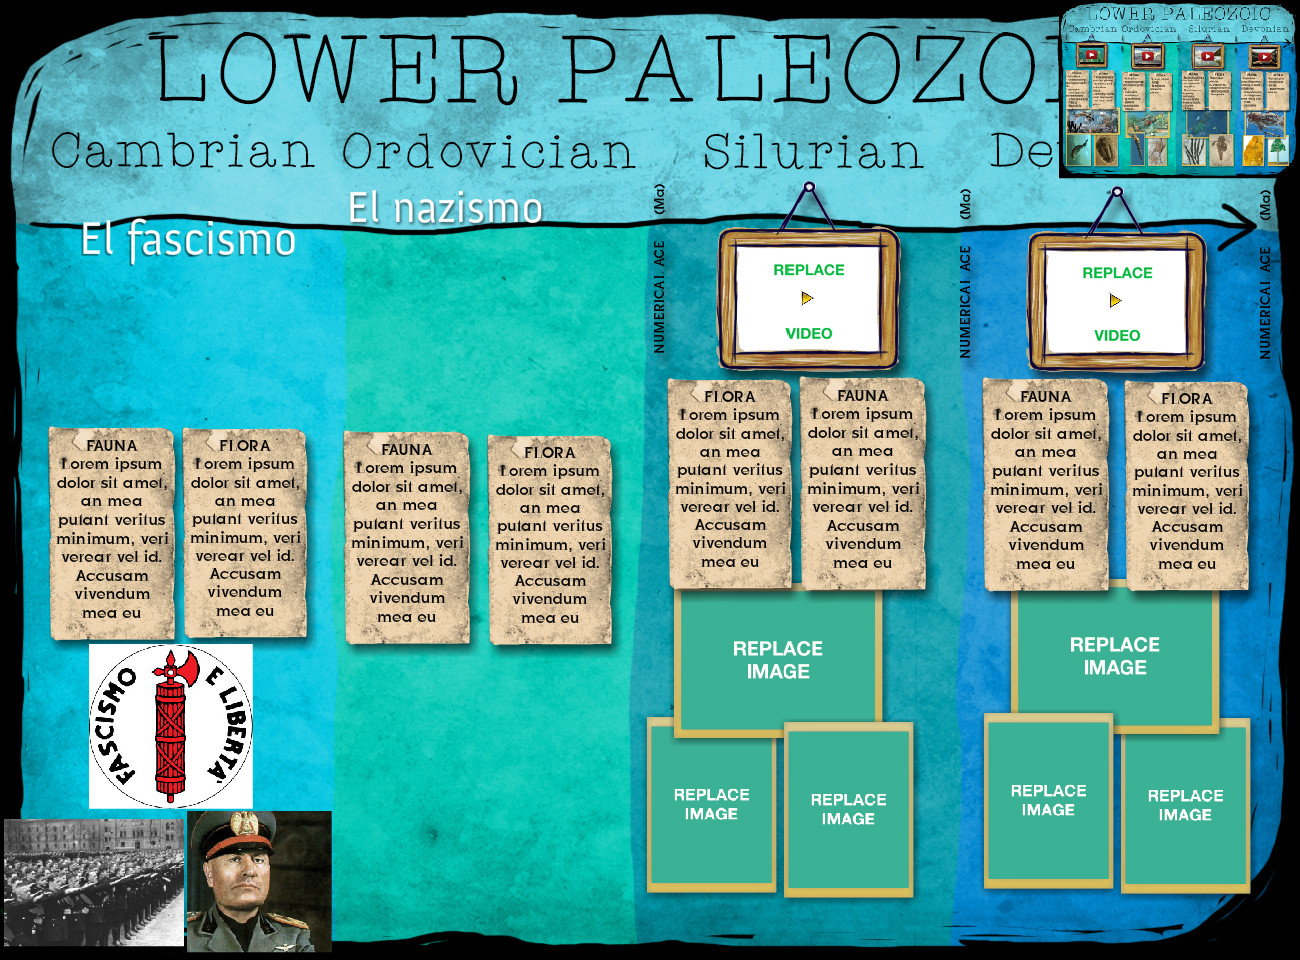 Lower Paleozoic